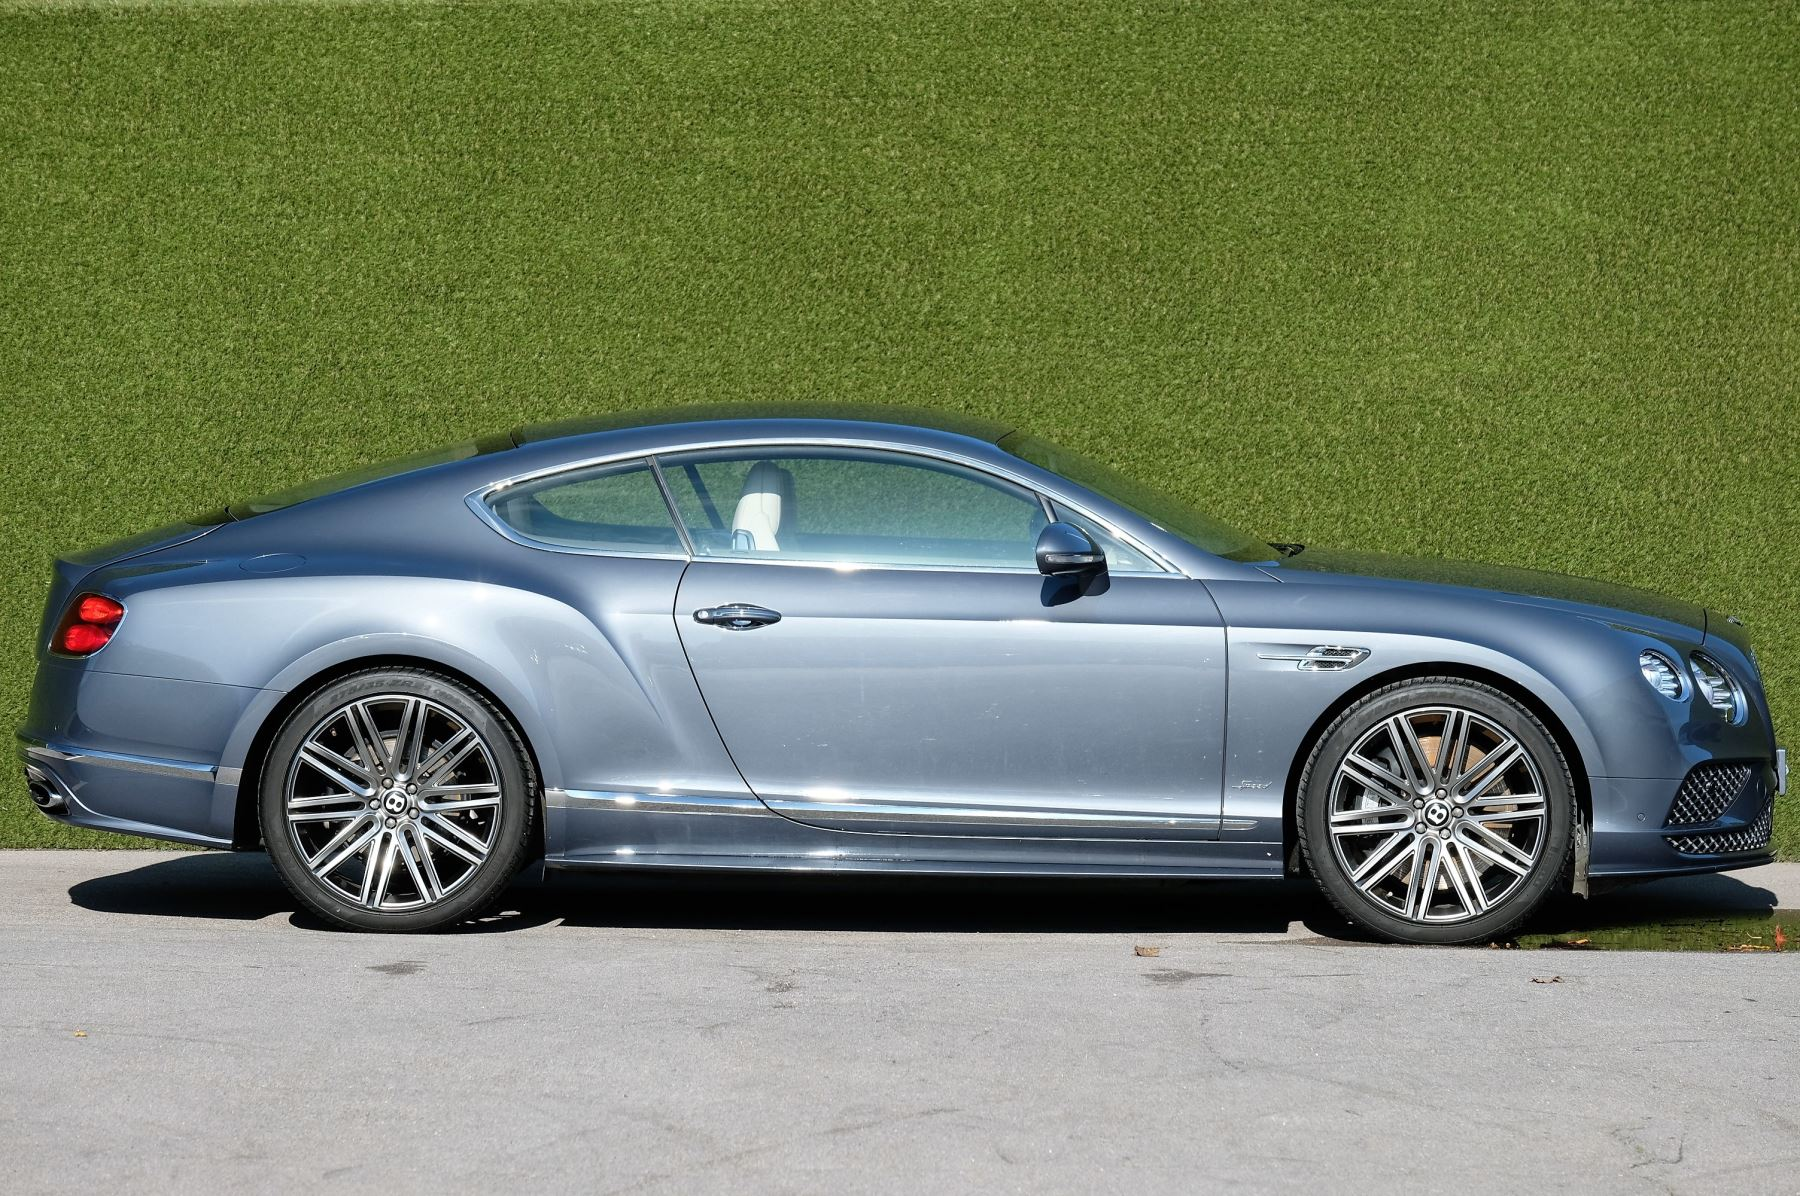 Bentley Continental GT 6.0 W12 [635] Speed 2dr image 3